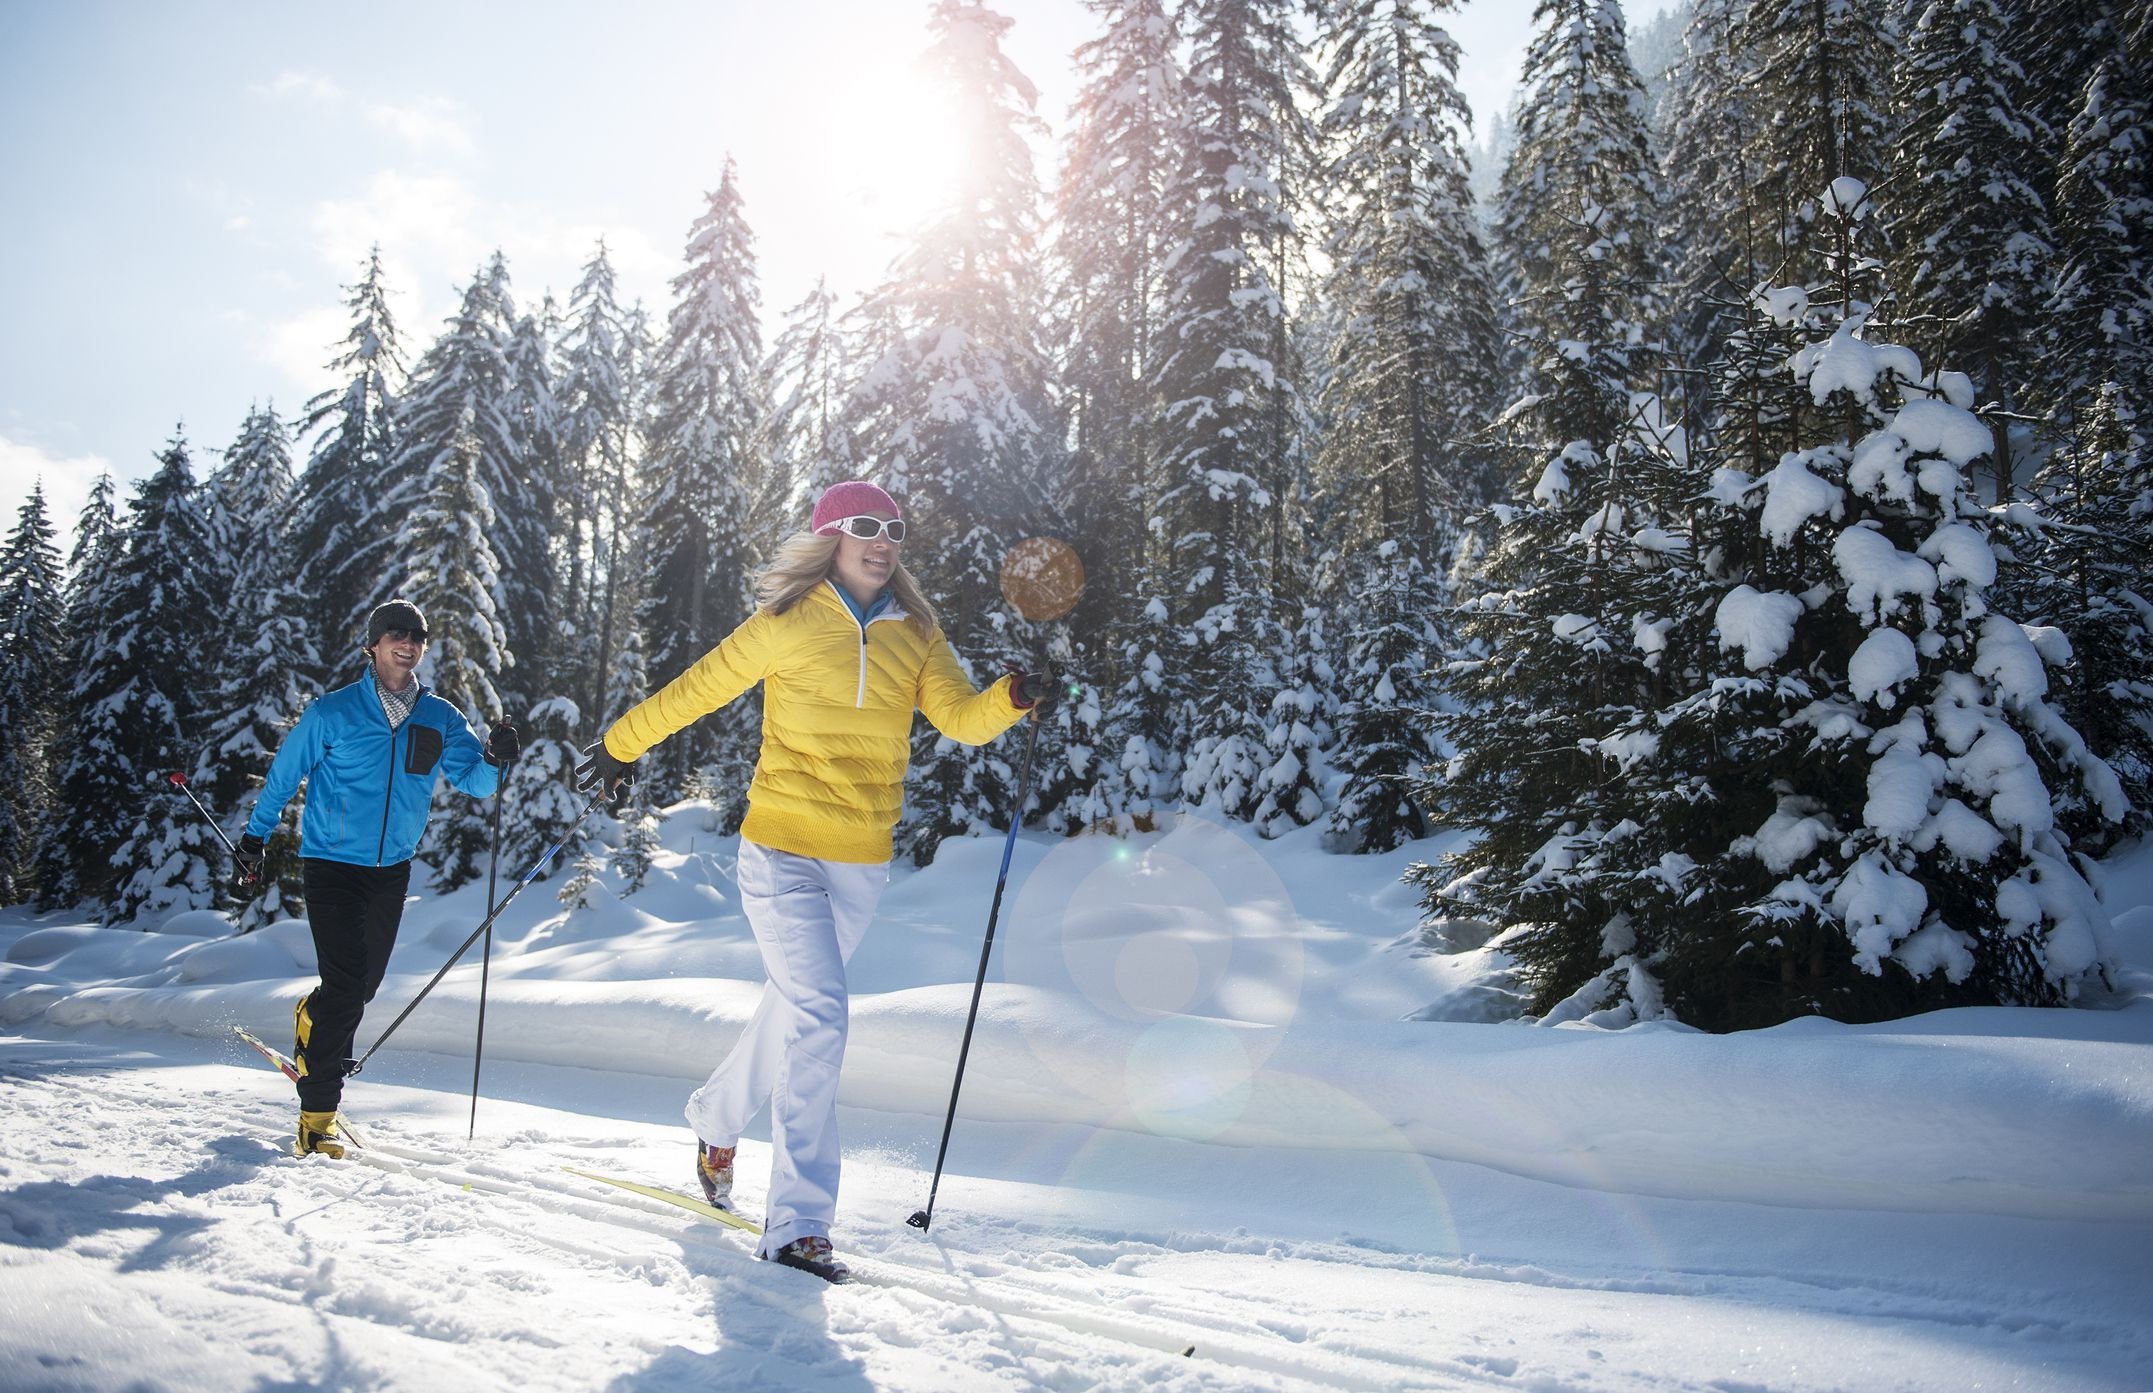 The 9 Best Cross-Country Skis of 2020